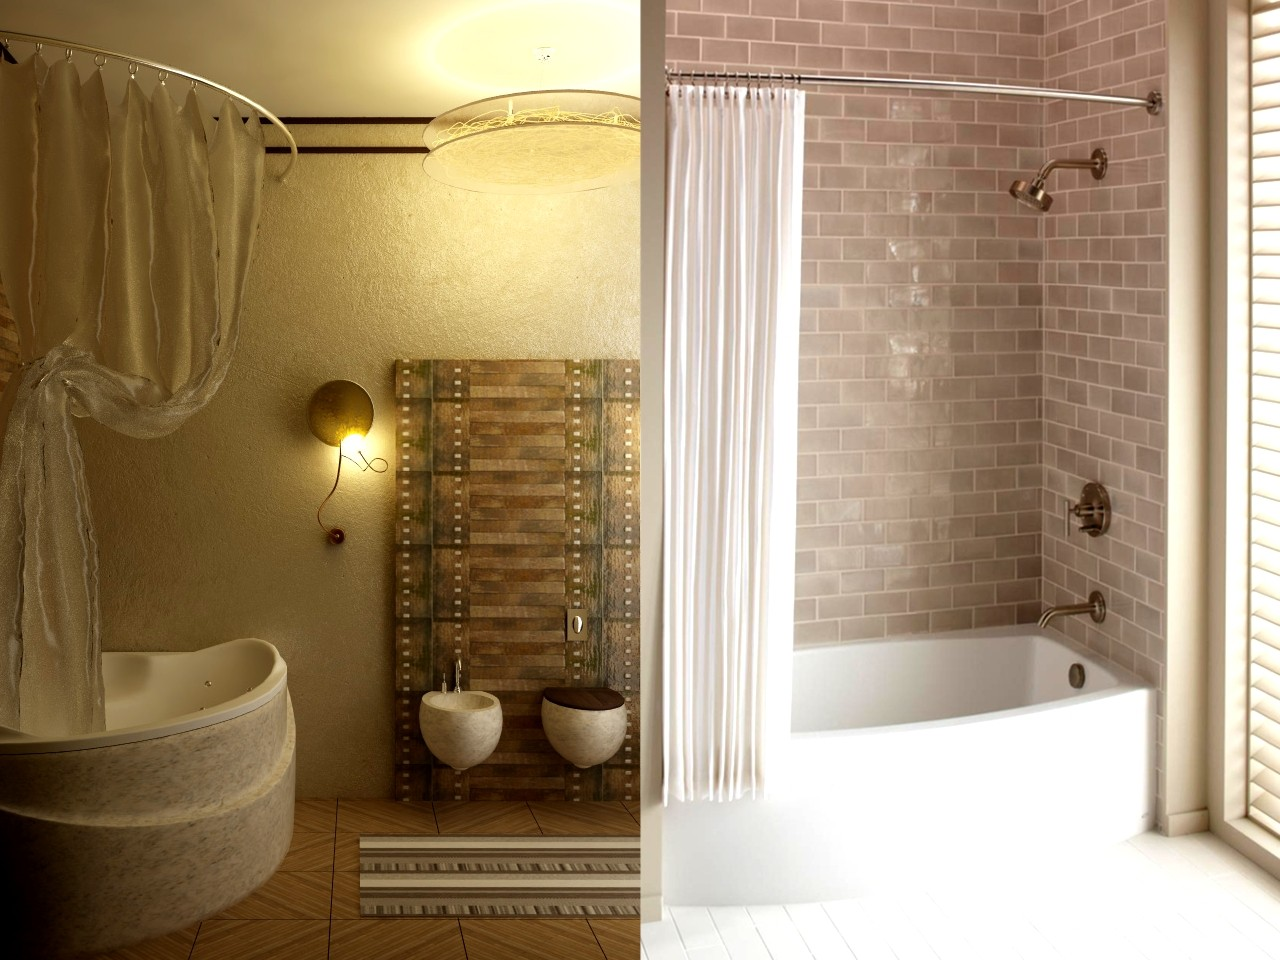 Combo bathtub and shower classic